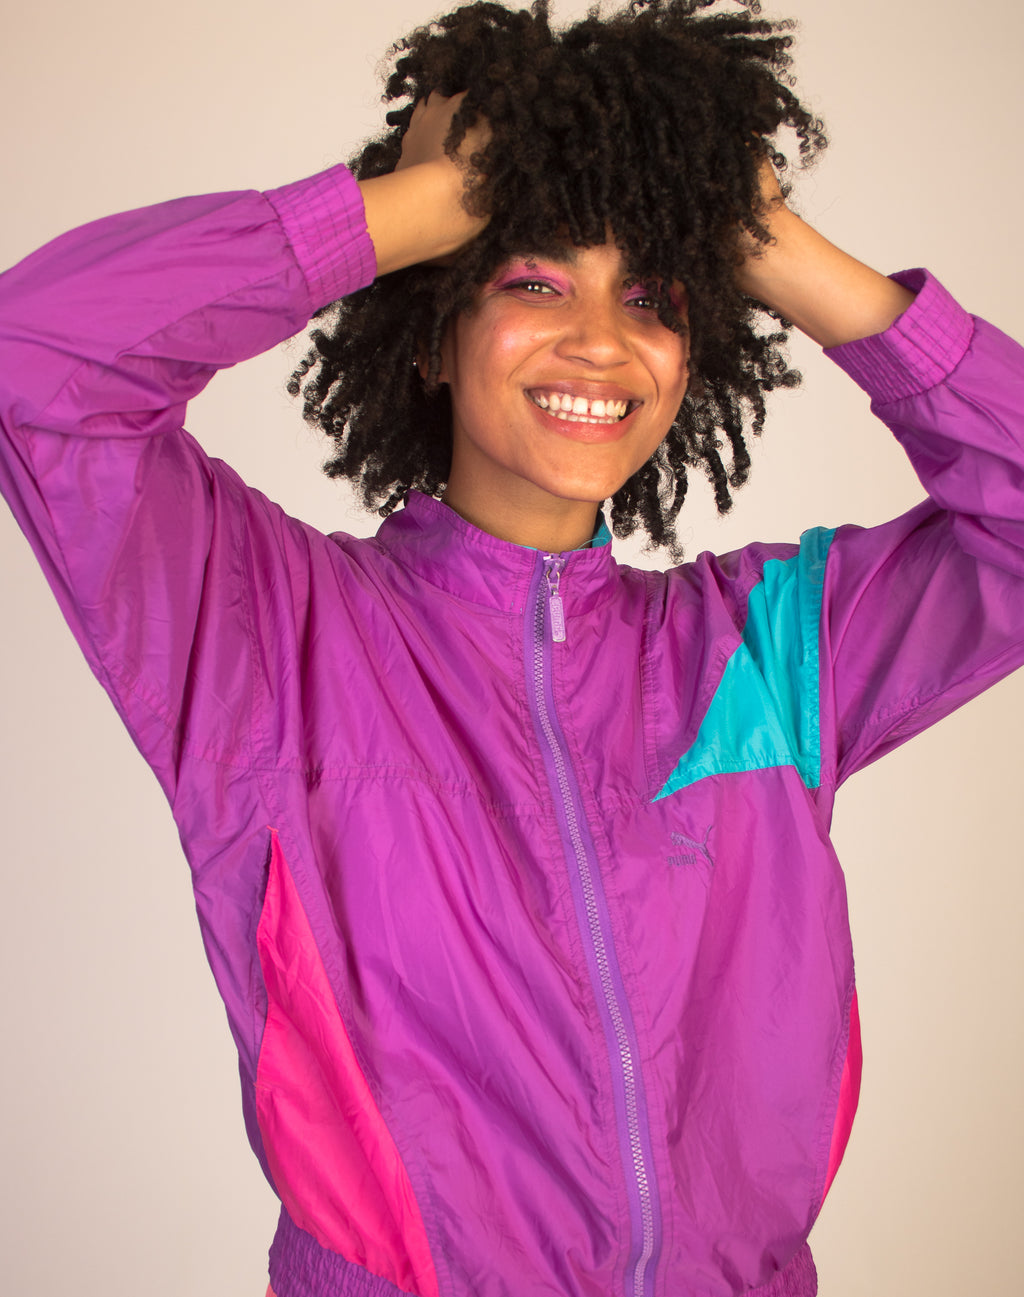 PUMA WINDBREAKER JACKET